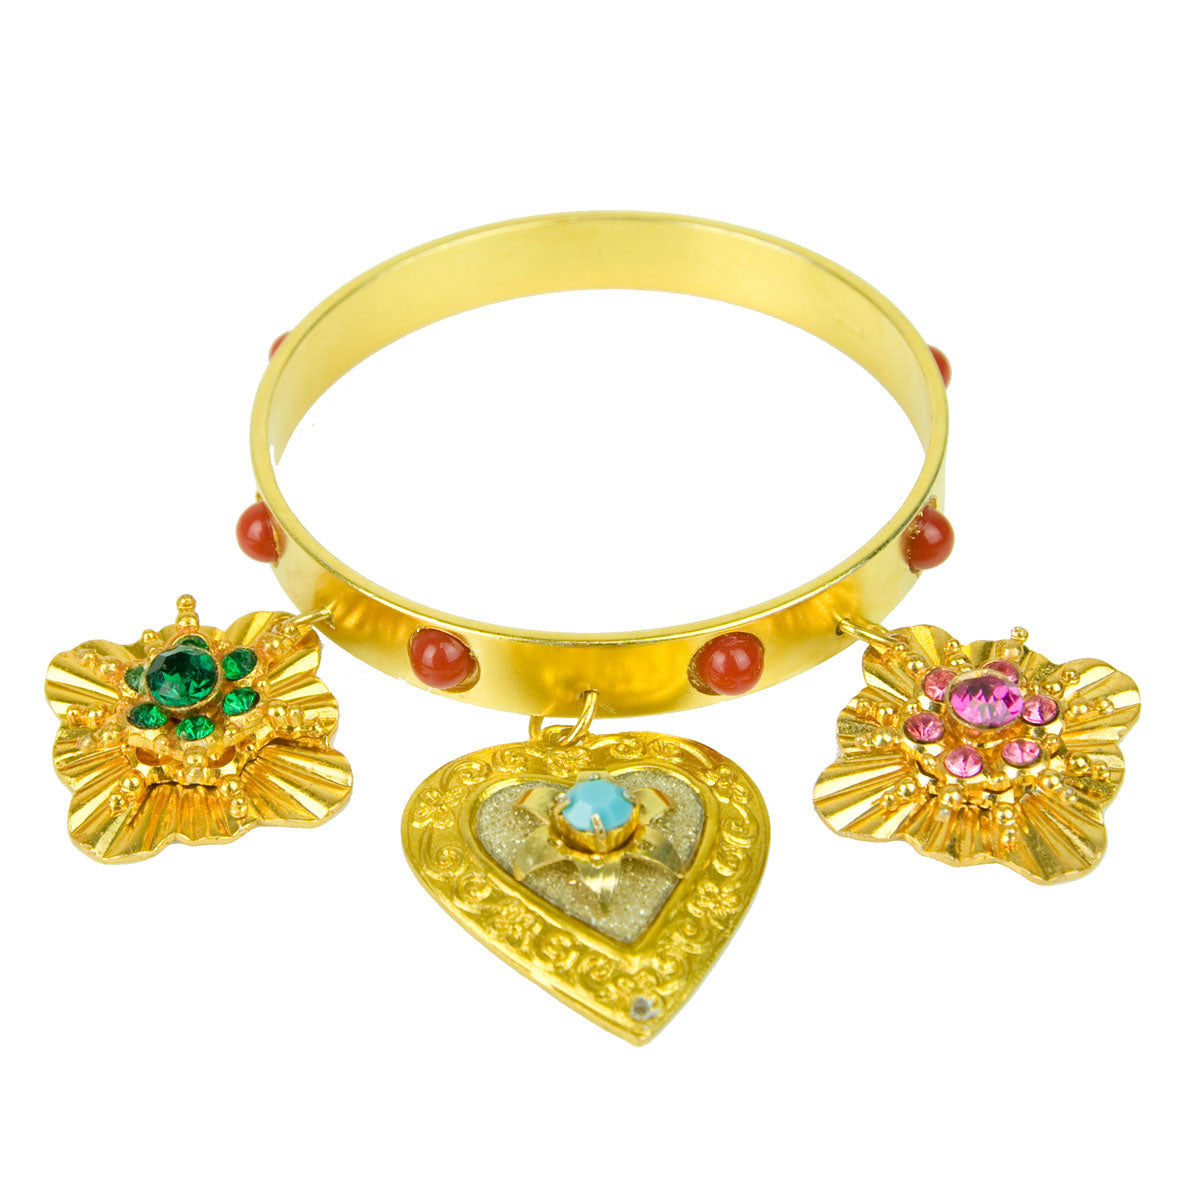 gold plated vintage bracelet with charms